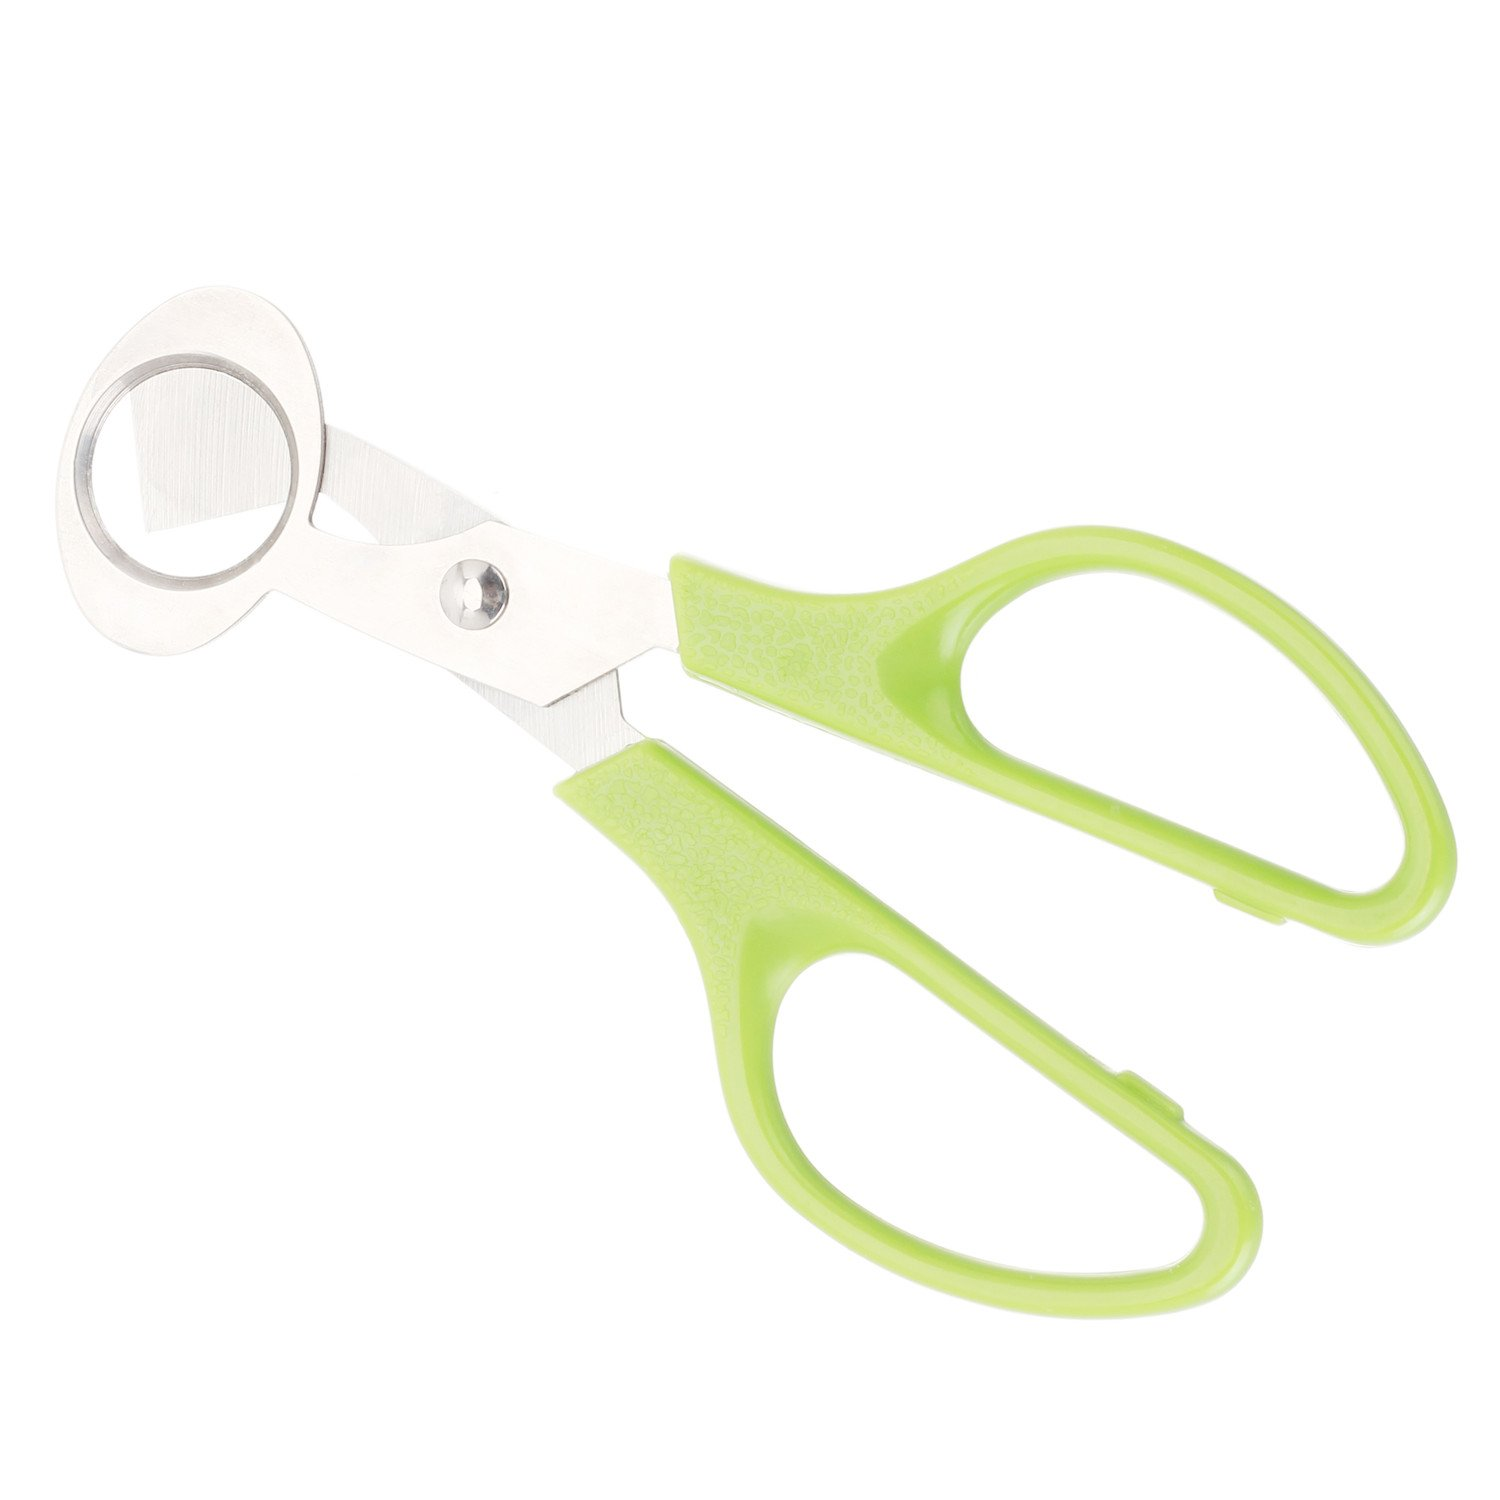 Quail Egg Shell Cutters Scissors - Green Merssavo